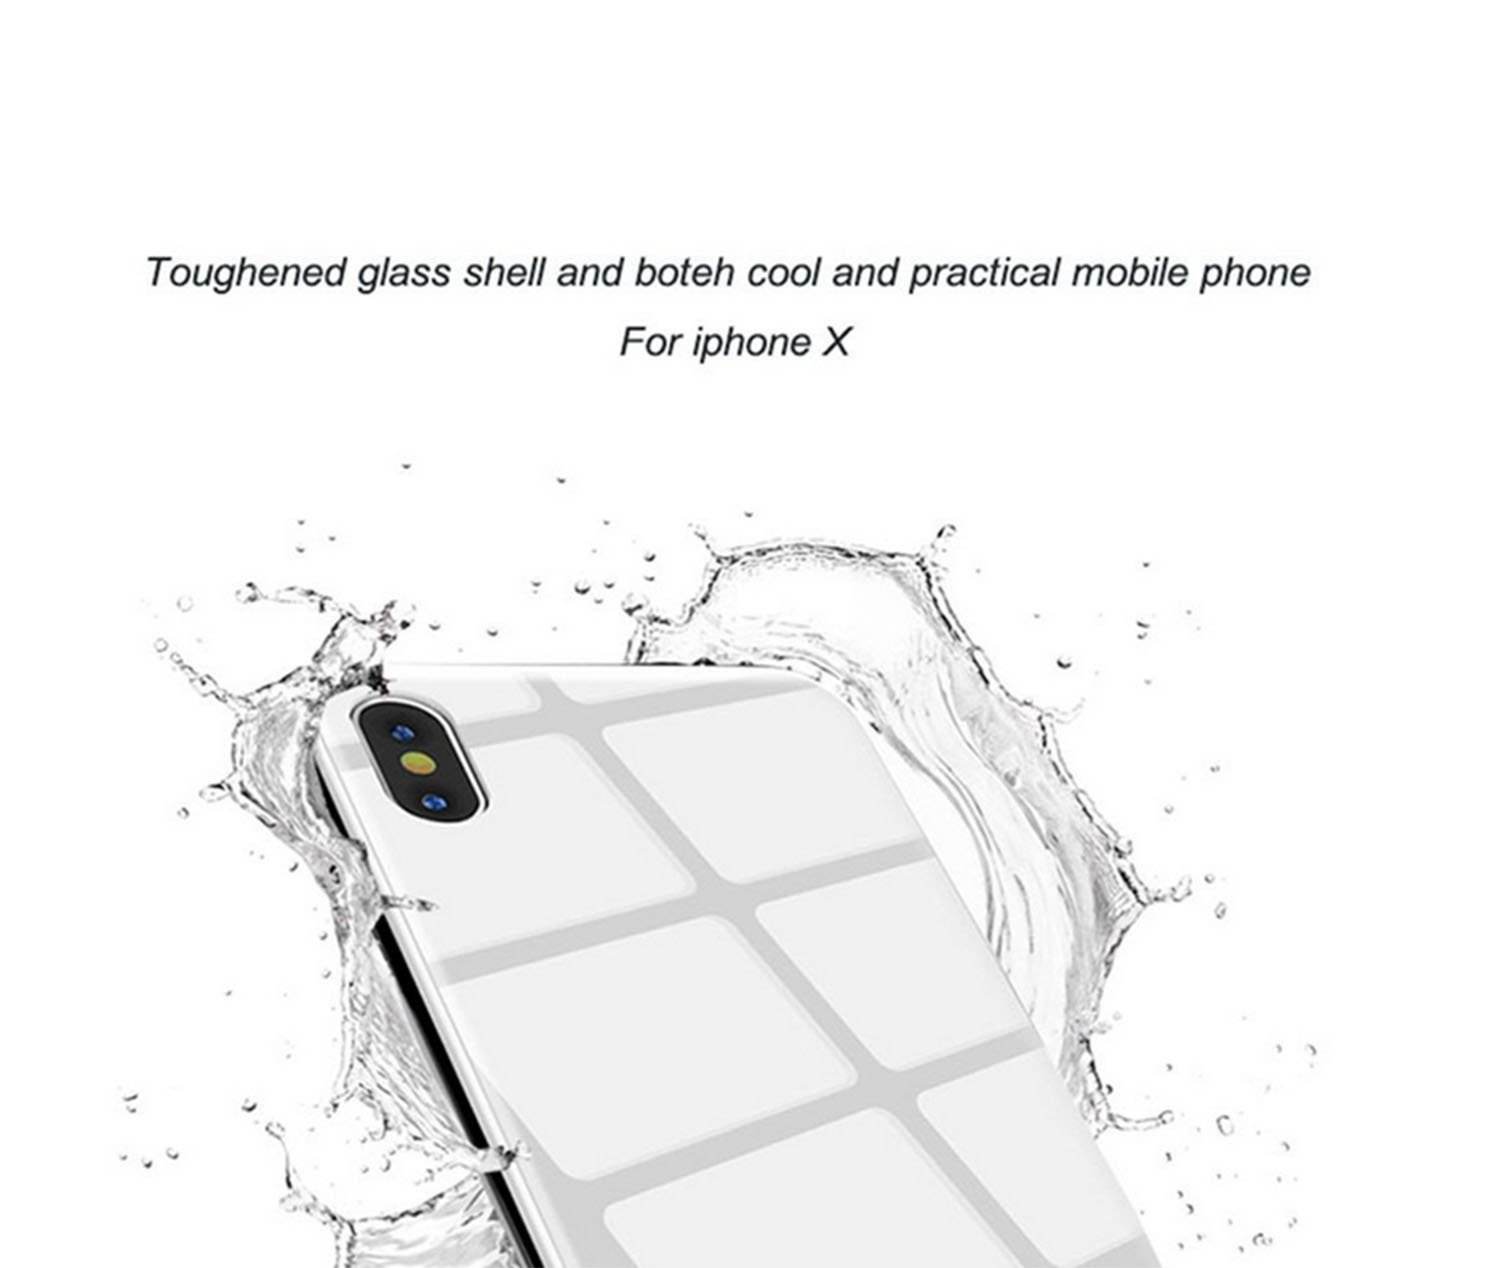 iphone 6 block diagram box wiring diagram OpenWrt Screenshots amazon switcheasy protective iphone x tempered glass case drop microsoft block diagram amazon switcheasy protective iphone